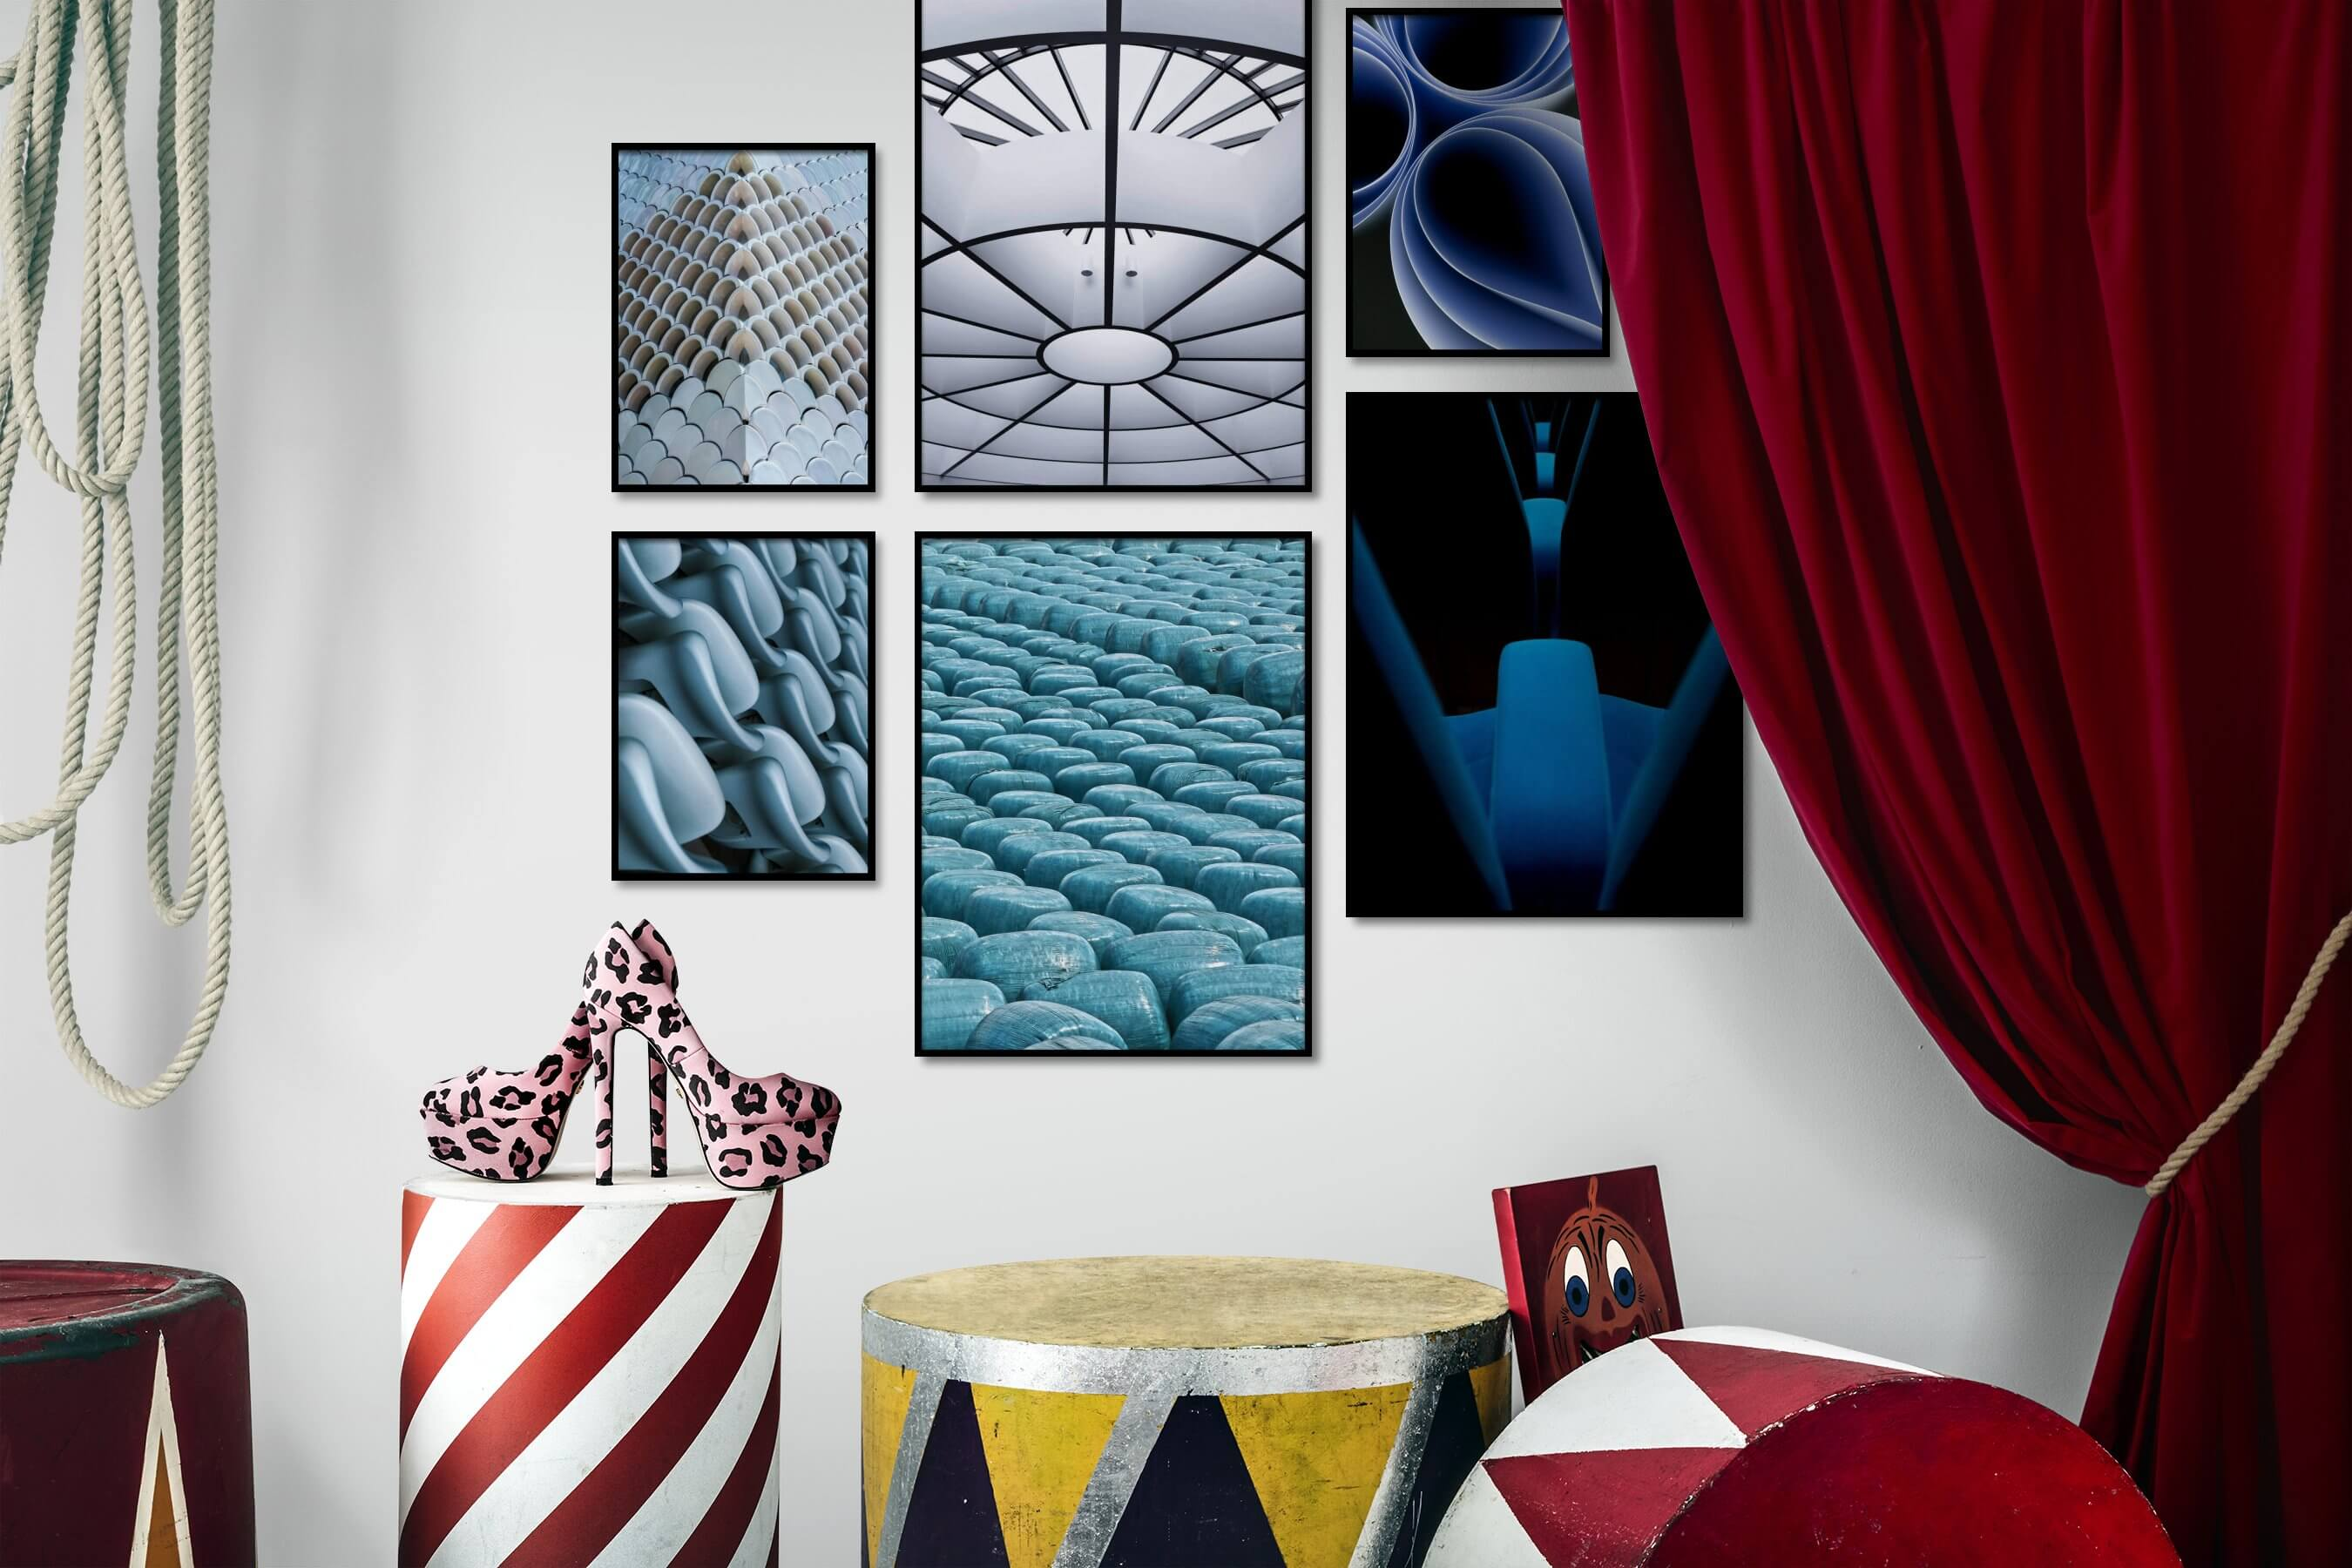 Gallery wall idea with six framed pictures arranged on a wall depicting For the Maximalist, Black & White, Colorful, For the Moderate, and Dark Tones